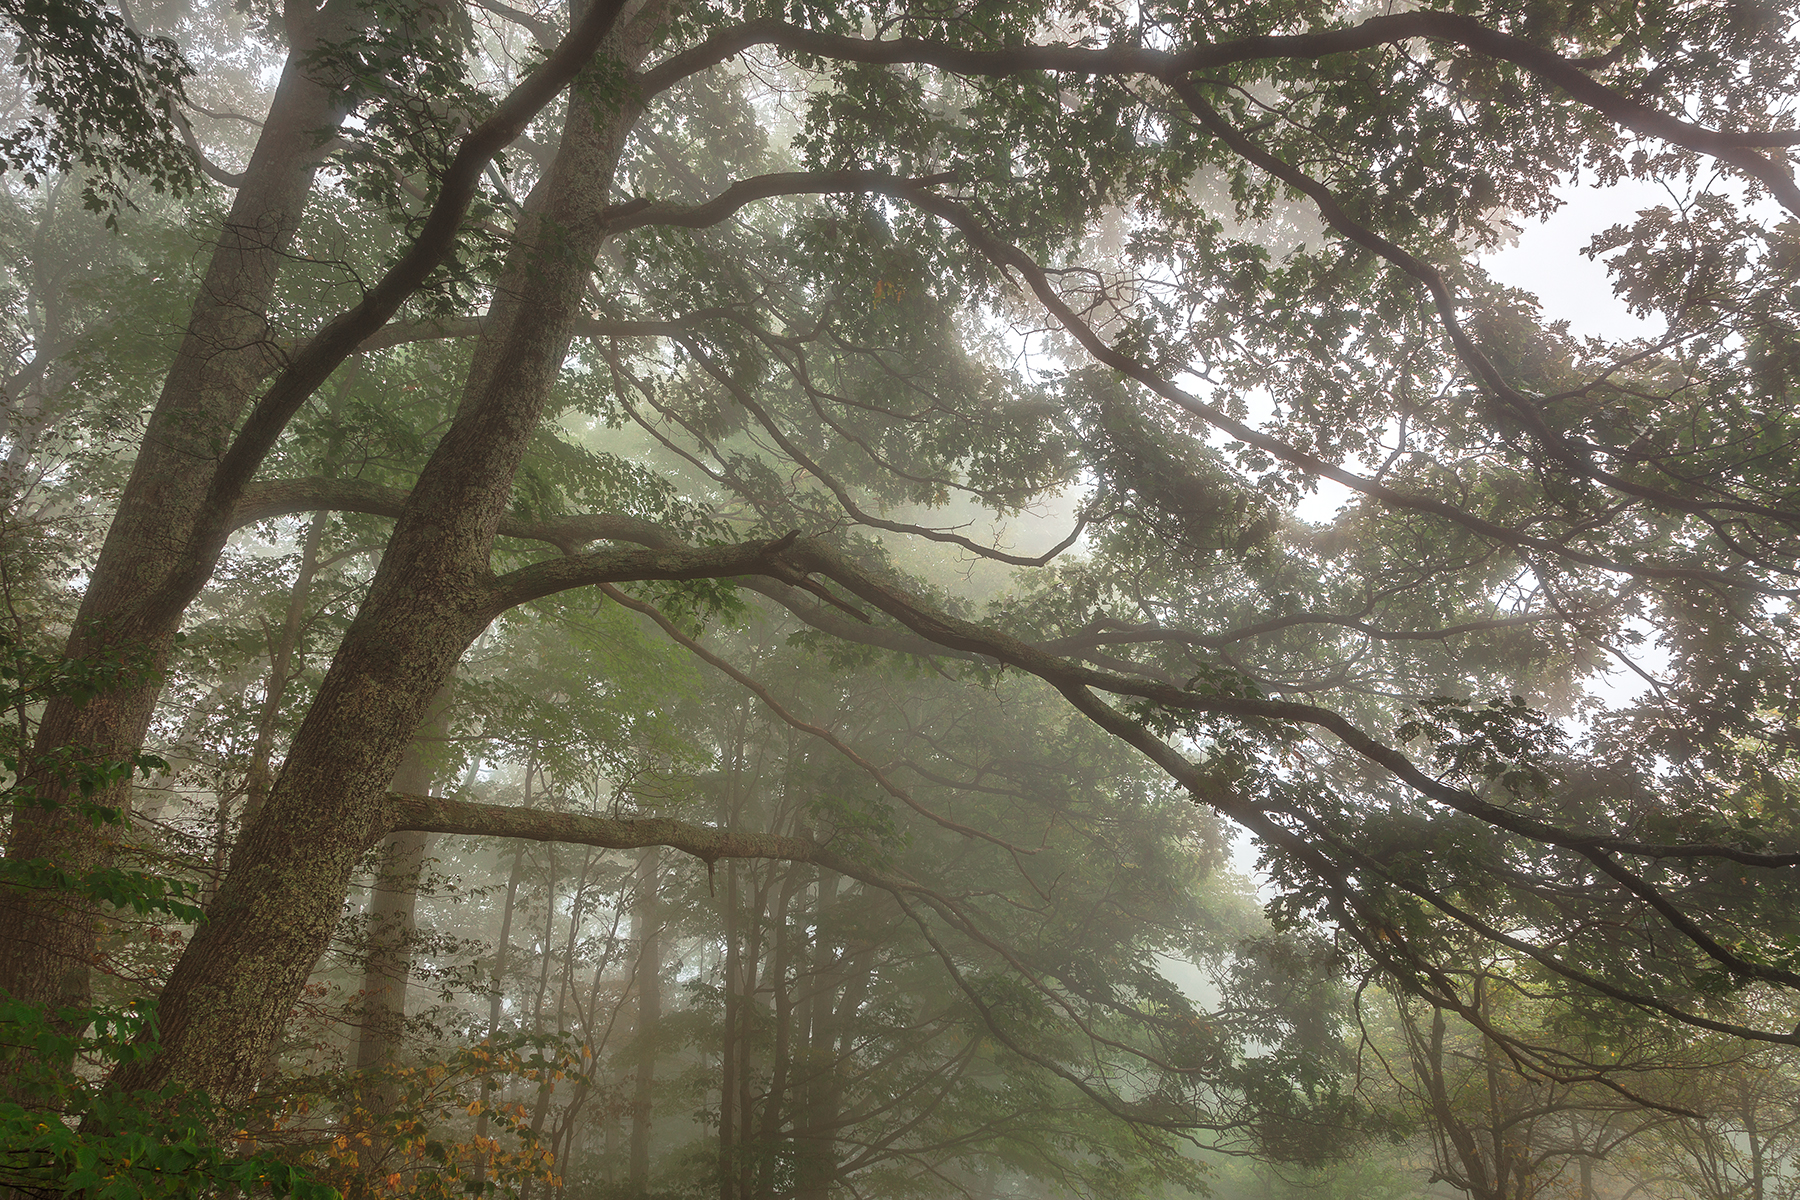 Misty Forest Branchscape - HDR, America, Plant, Sky, Shadows, HQ Photo